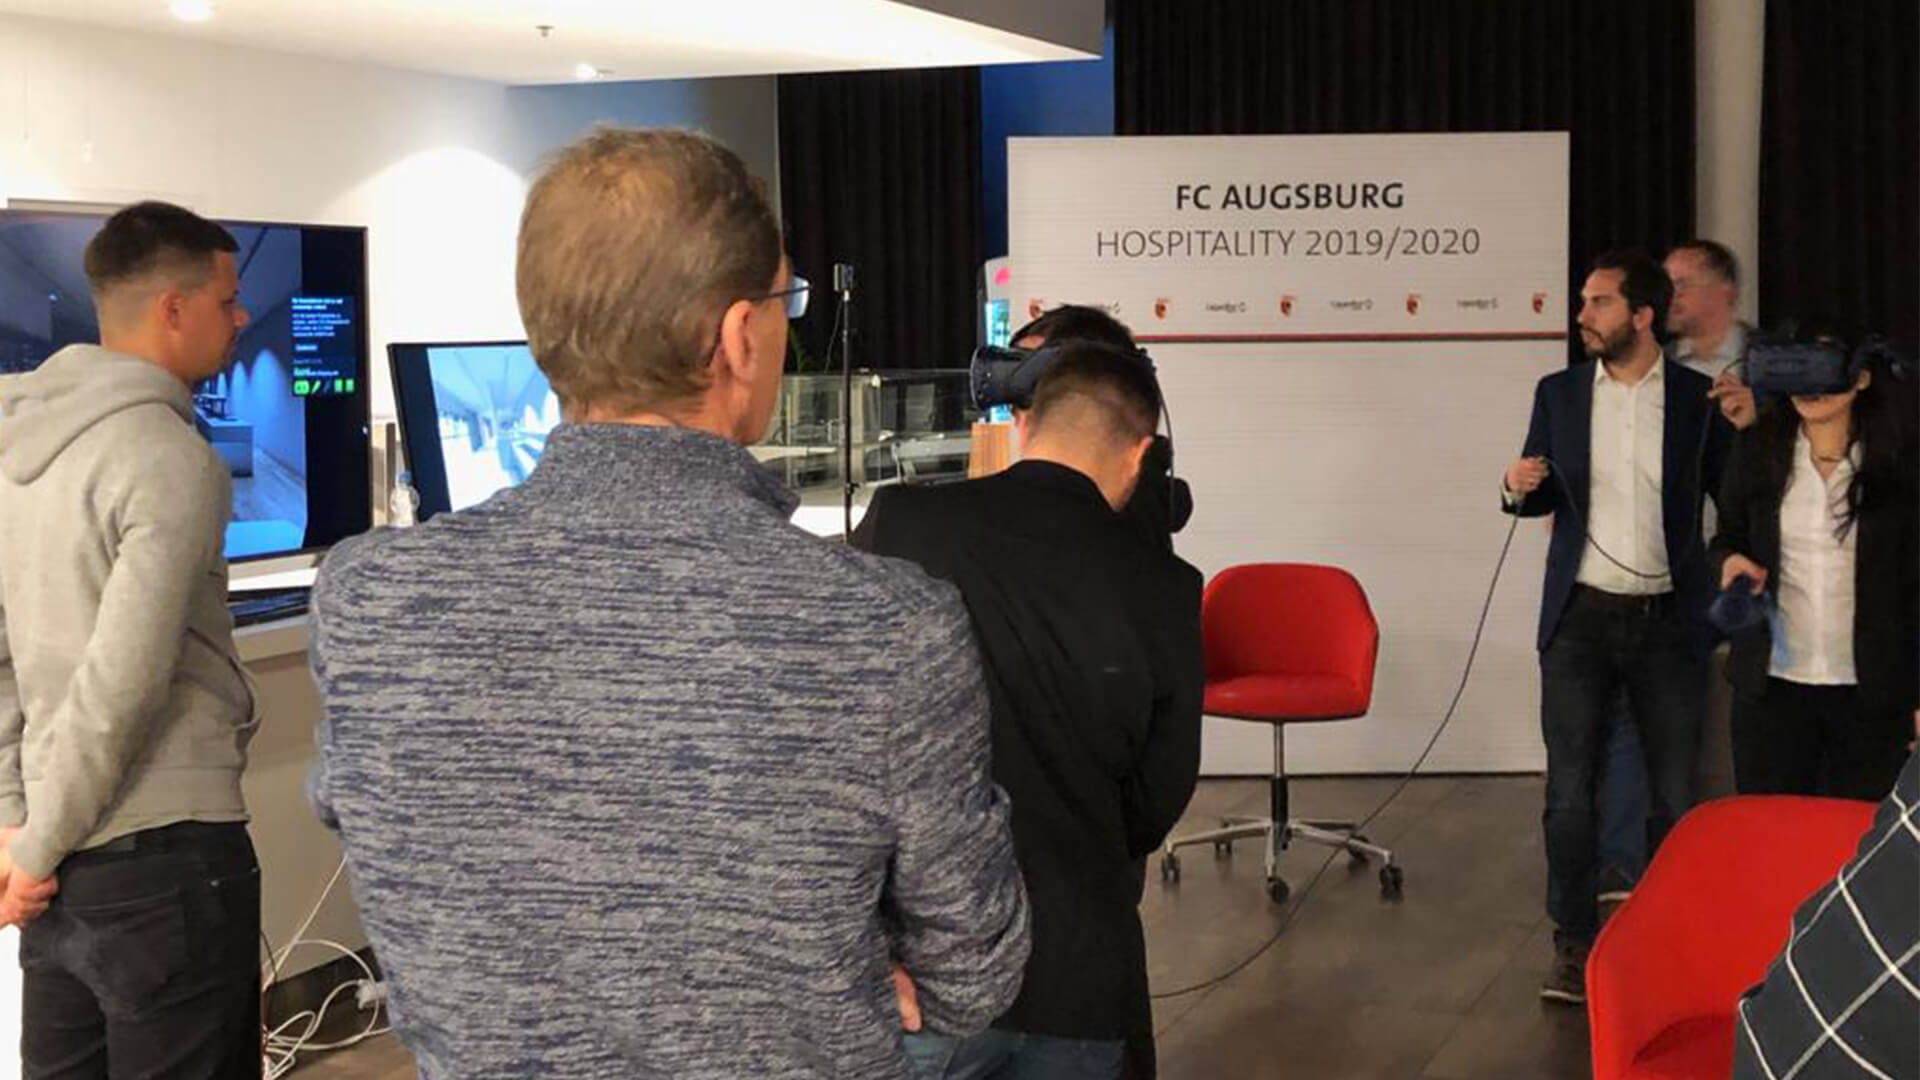 fc augsburg vip virtual reality technology